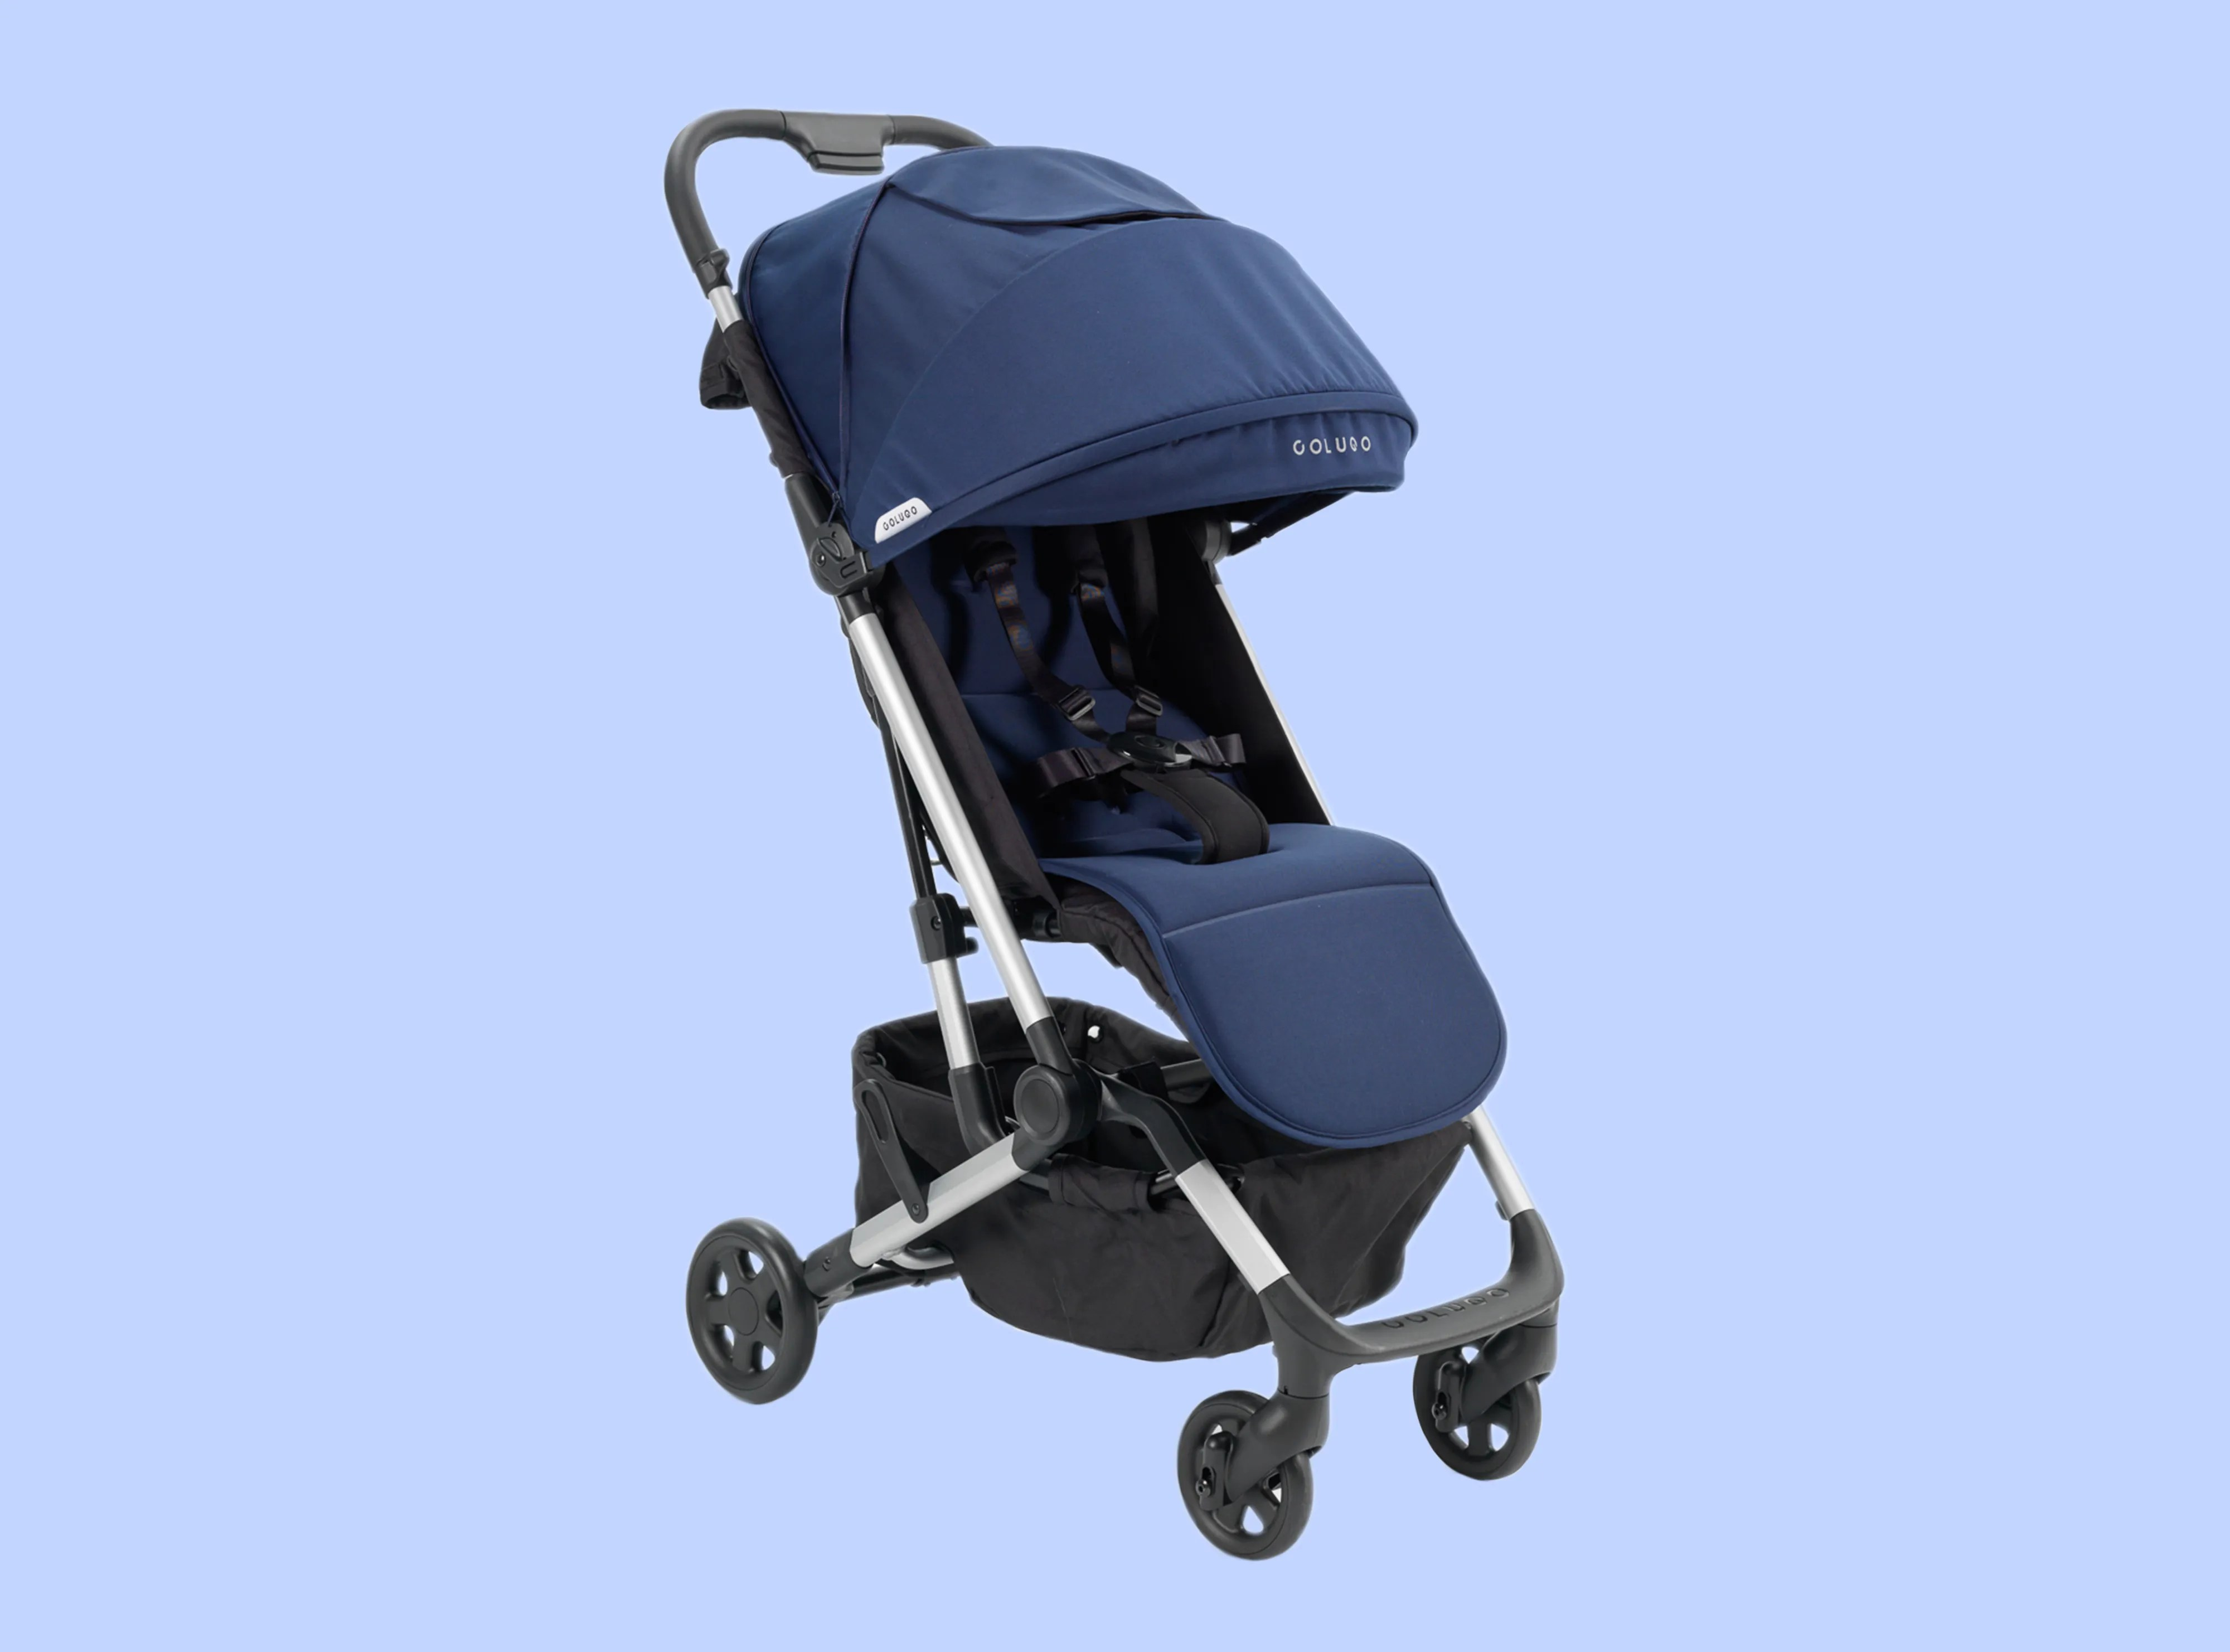 Easywalker Jogging Stroller The Best Travel Strollers Condé Nast Traveler